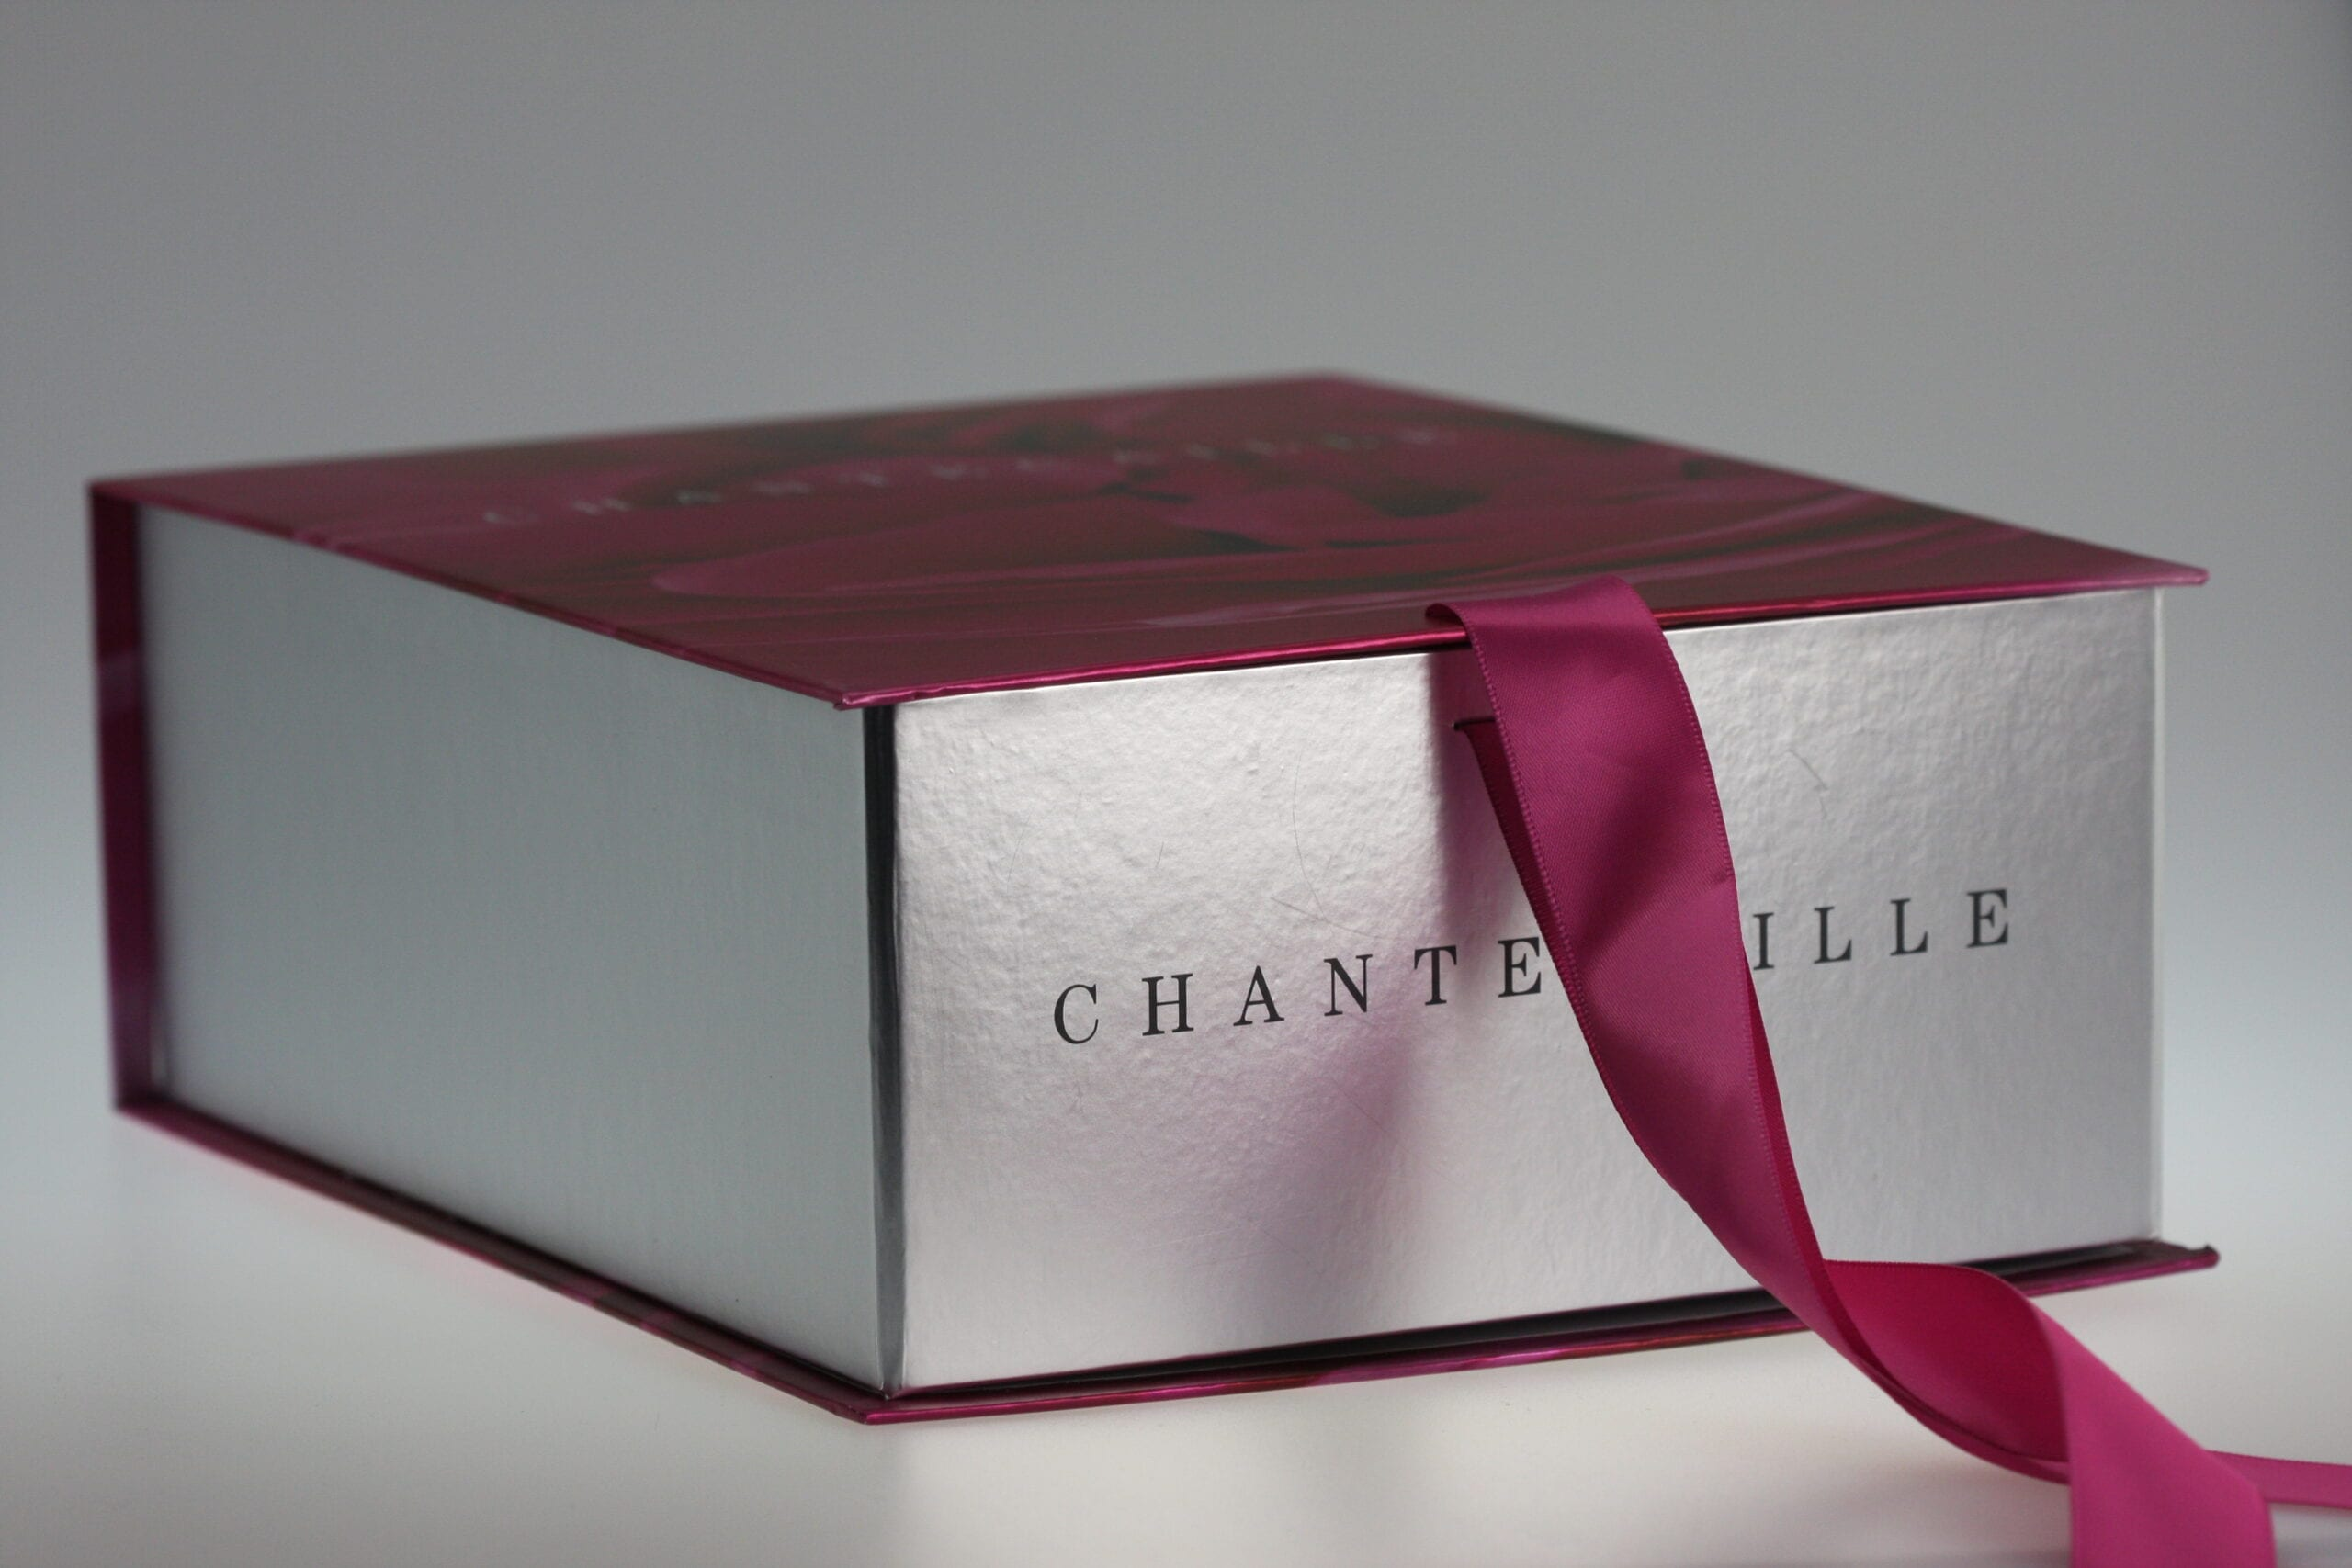 When it comes to custom collapsible packaging, cutting the cost doesn't always mean lacking in beauty, and this custom designed collapsible box with a ribbon detail perfectly captures that concept.